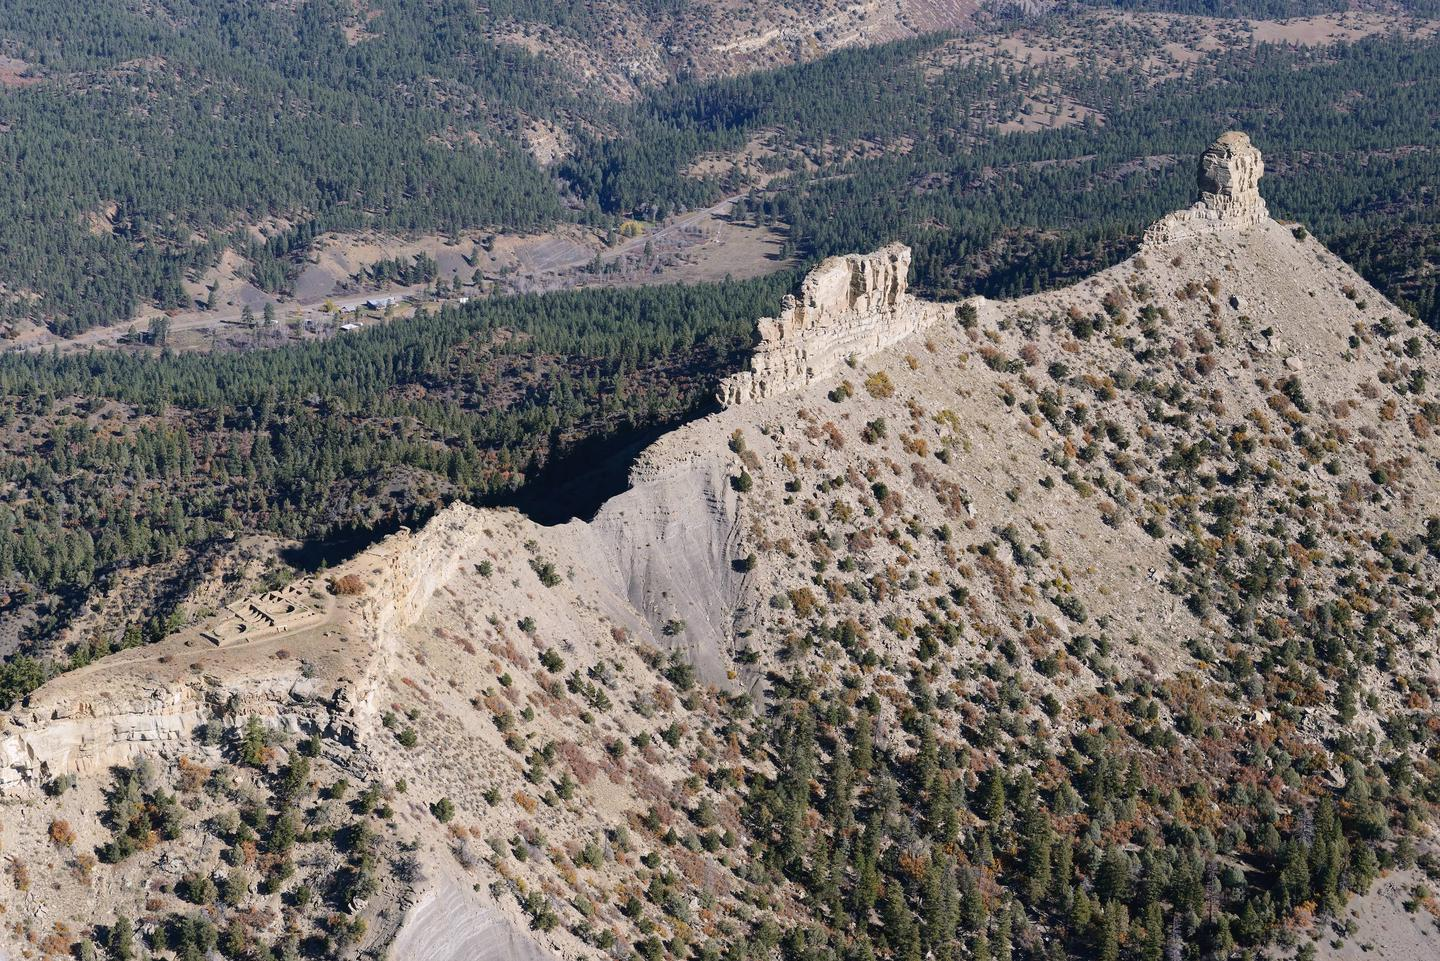 Chimney Rock National Monument is an intimate, off-the-beaten-path archaeological site located at the southern edge of the San Juan Mountains  in Southwestern Colorado. Enjoy beautiful 360 degree view of the San Juan Mountain from the Great House on top of the Chimney Rock Mesa!